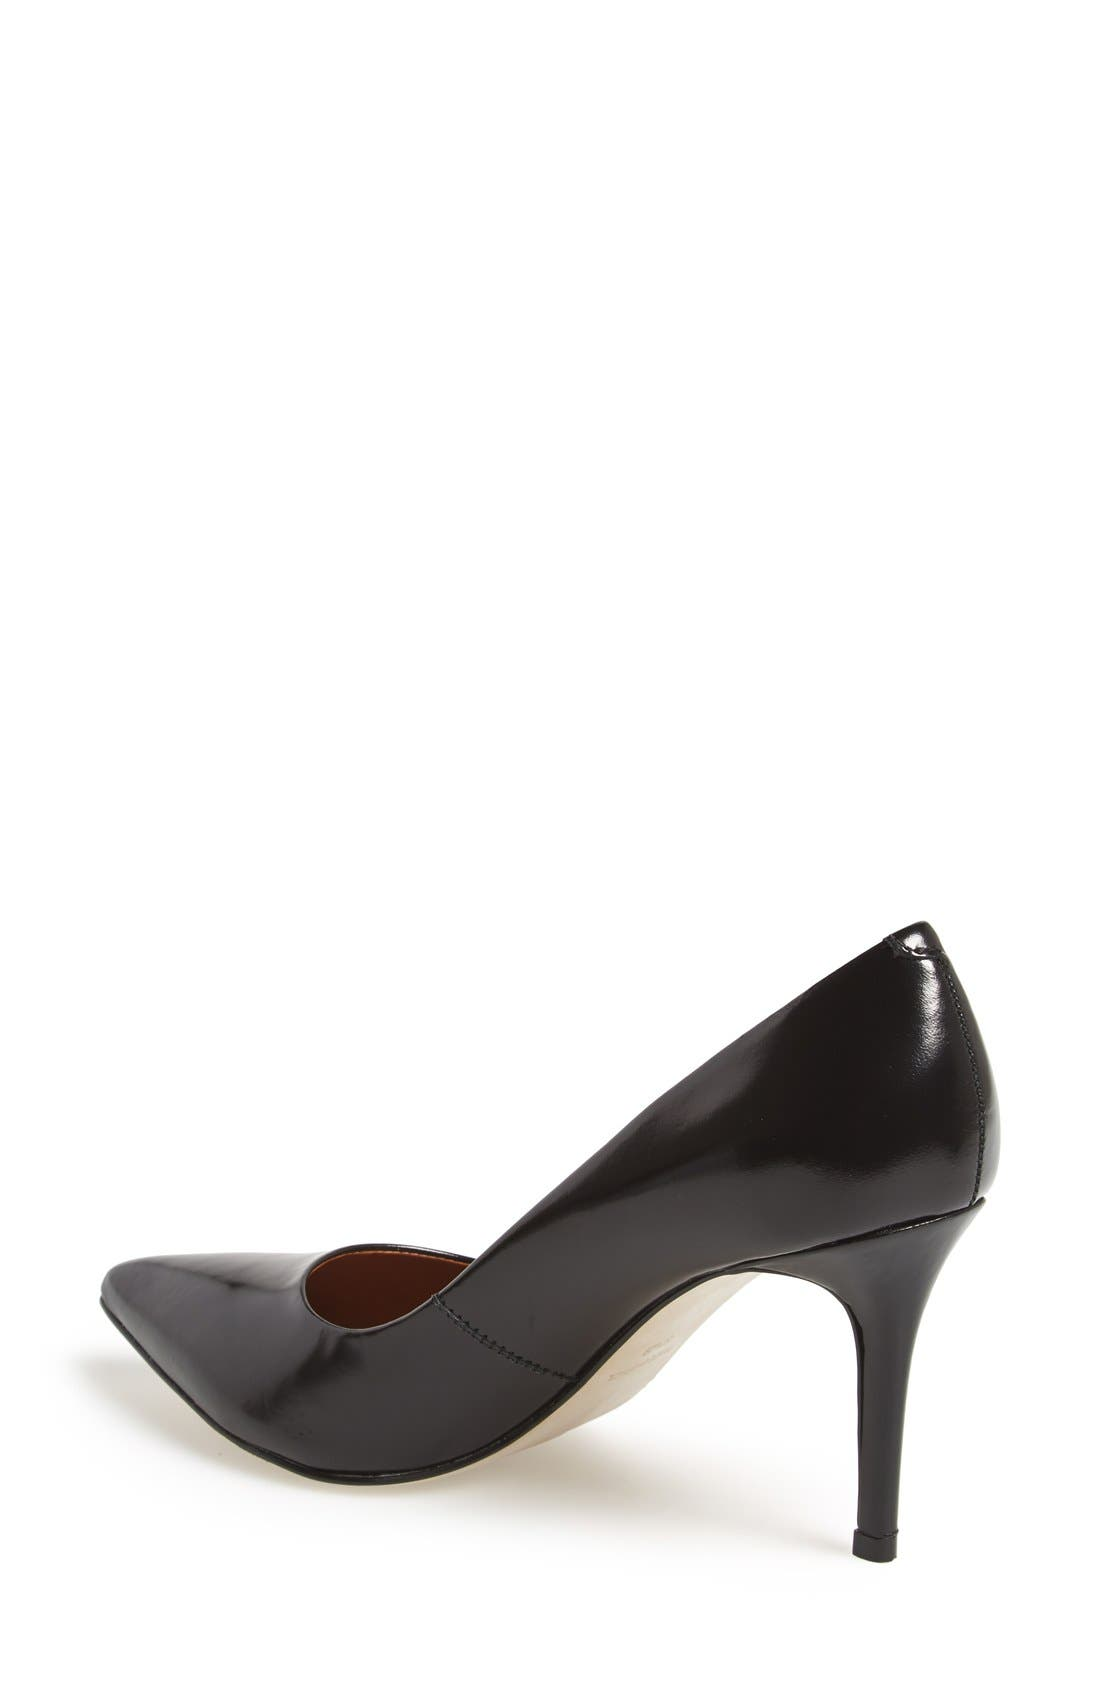 STEVEN BY STEVE MADDEN, 'Shiela' Pointy Toe Pump, Alternate thumbnail 3, color, 001